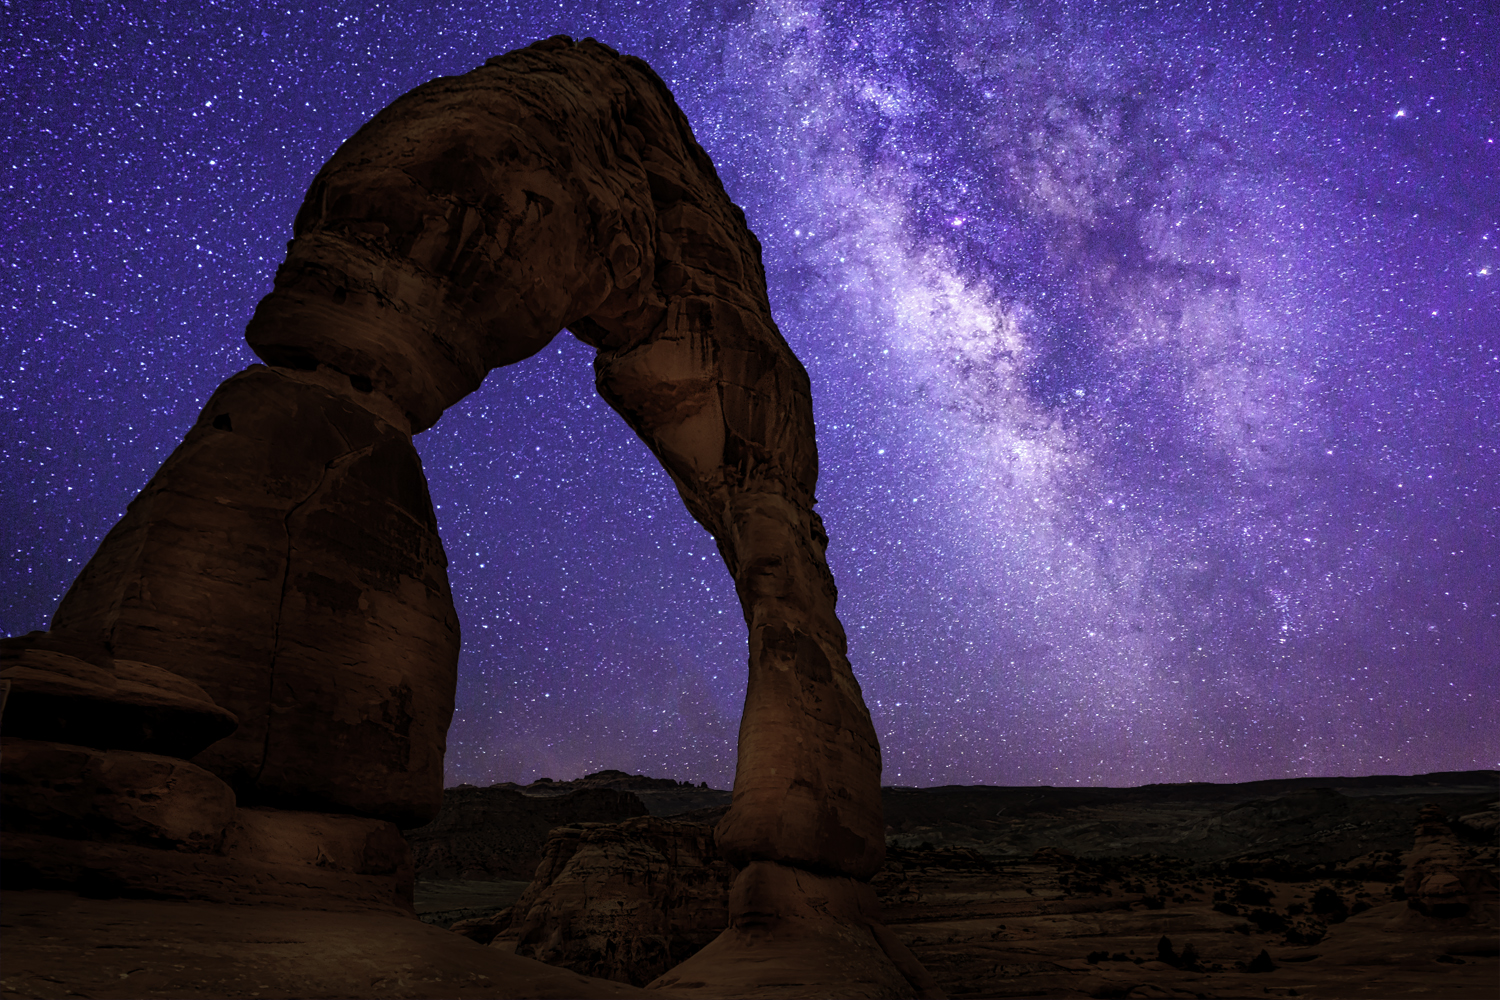 Milky Way DelicateArch1sml